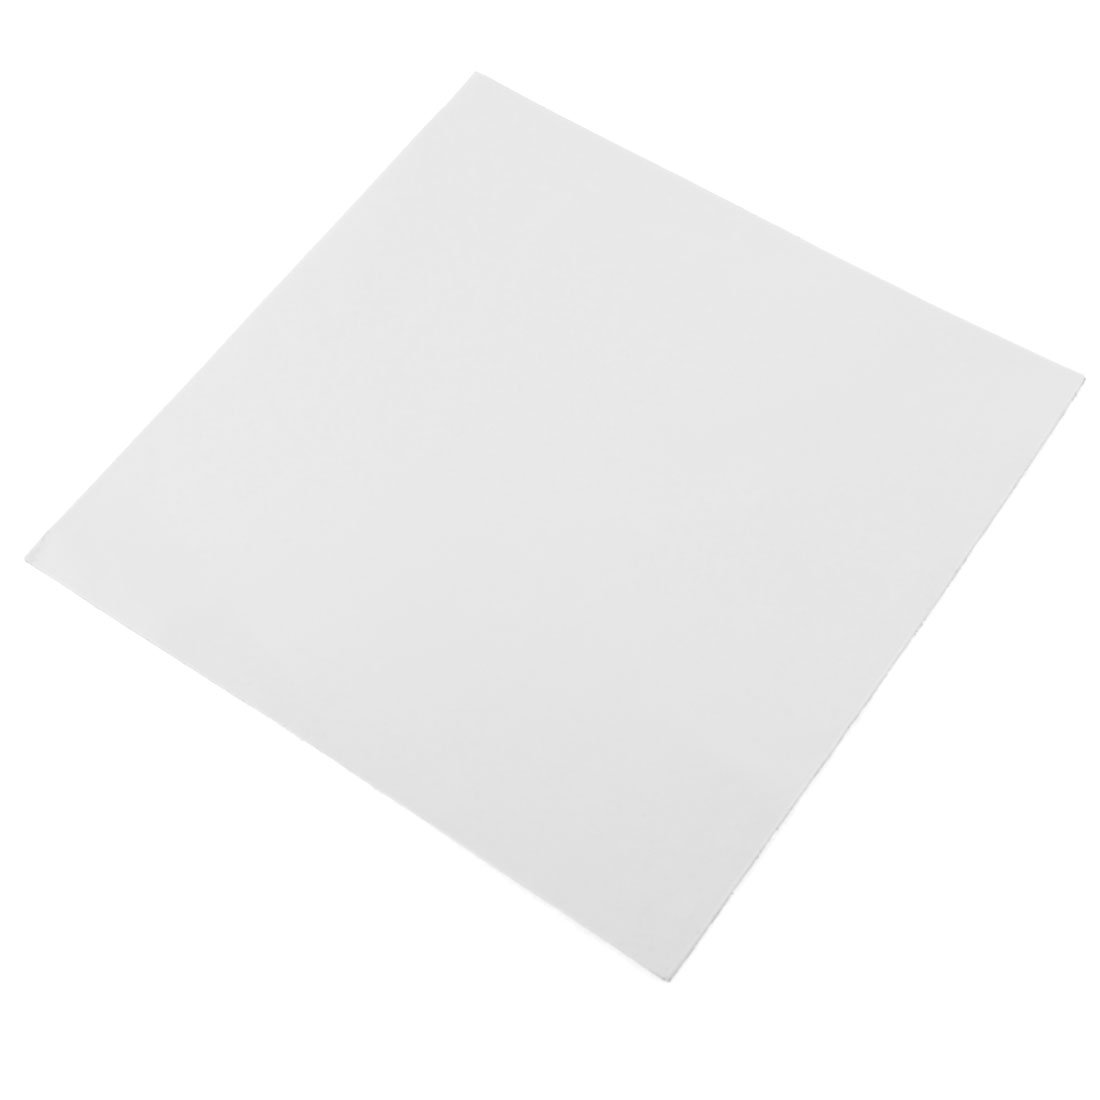 uxcell a13091600ux0058 CPU Thermal Silicone Pad Heatsink Cooling Conductive 205mmx205mmx2mm